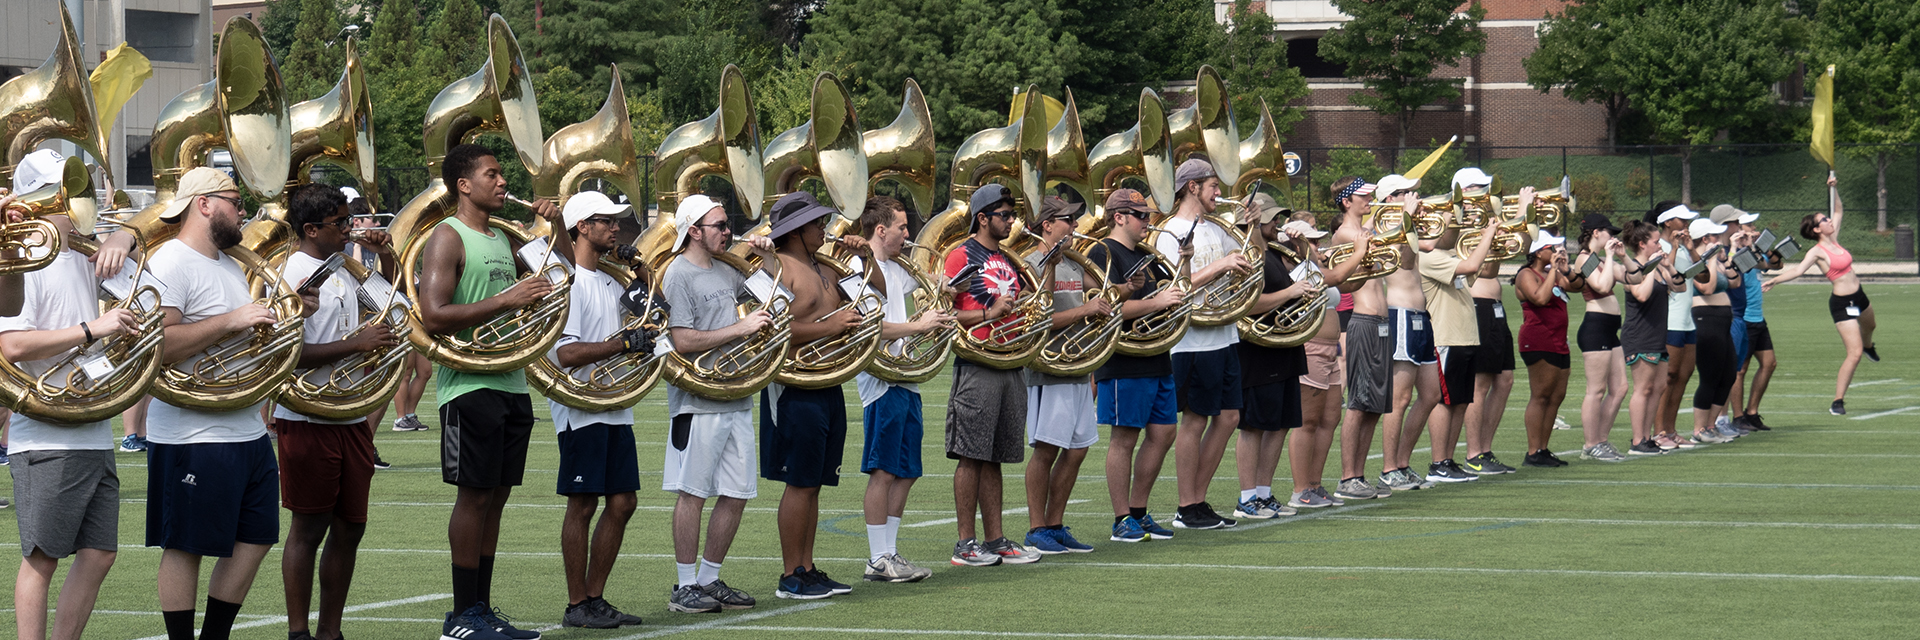 Plain clothes students practicing for a marching band performance in a field.